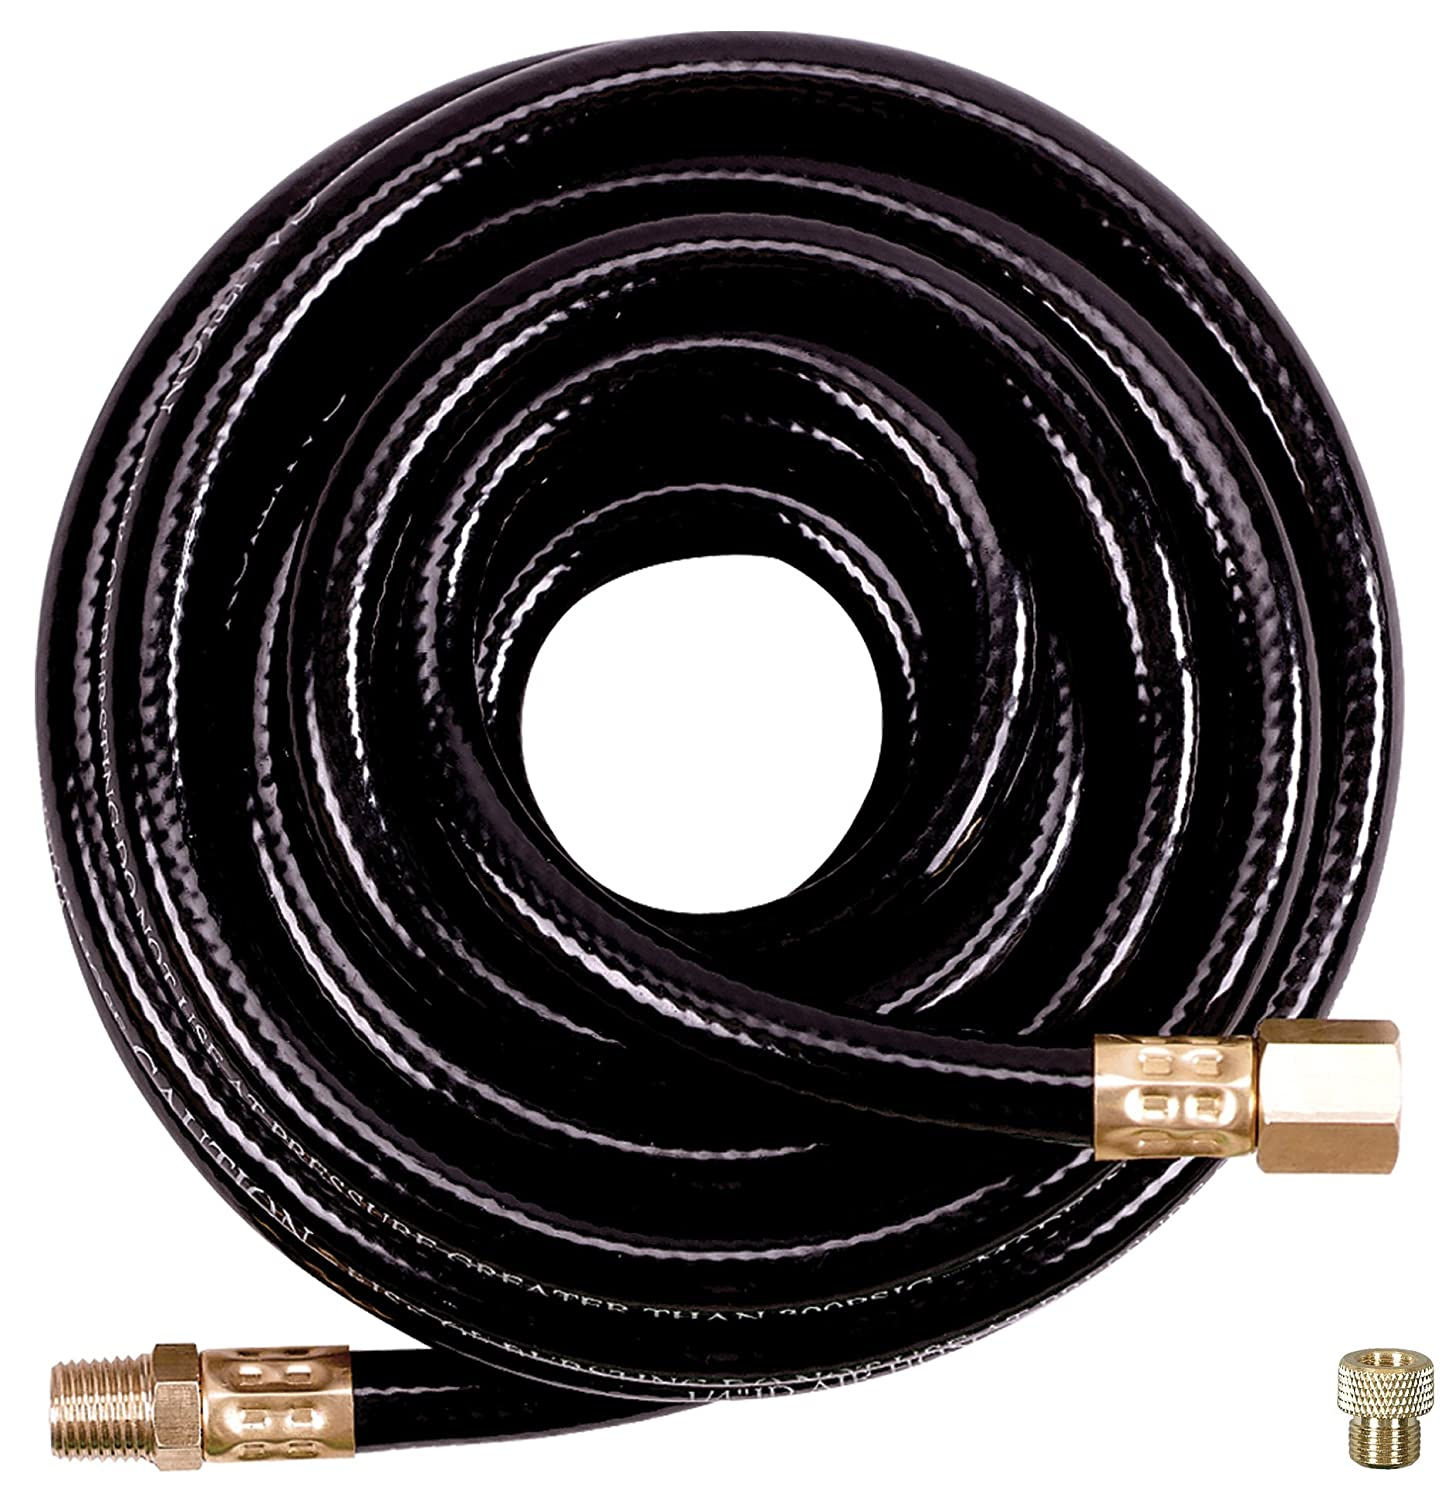 Craftsman 9-16113 Heavy Duty 3/8-Inch x 50 Foot Air Hose by Craftsman B007KHBR76